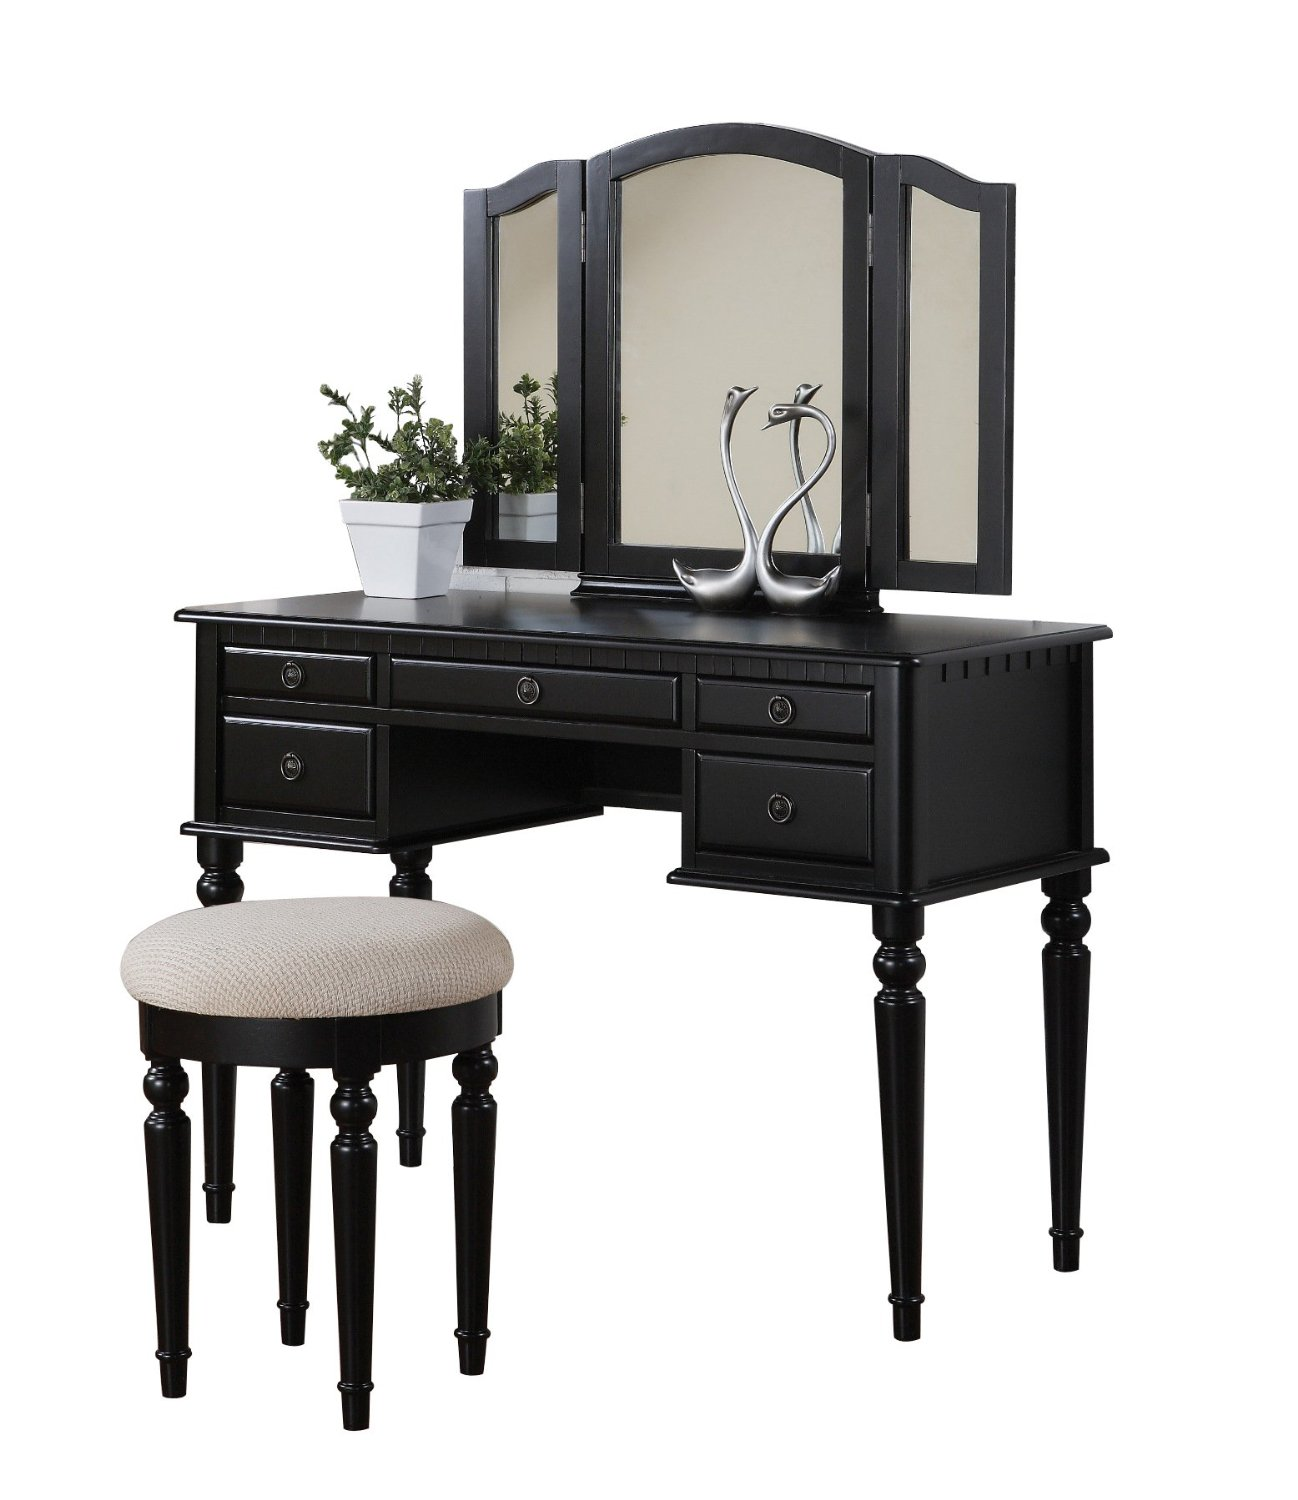 Image of: Makeup vanity table set black